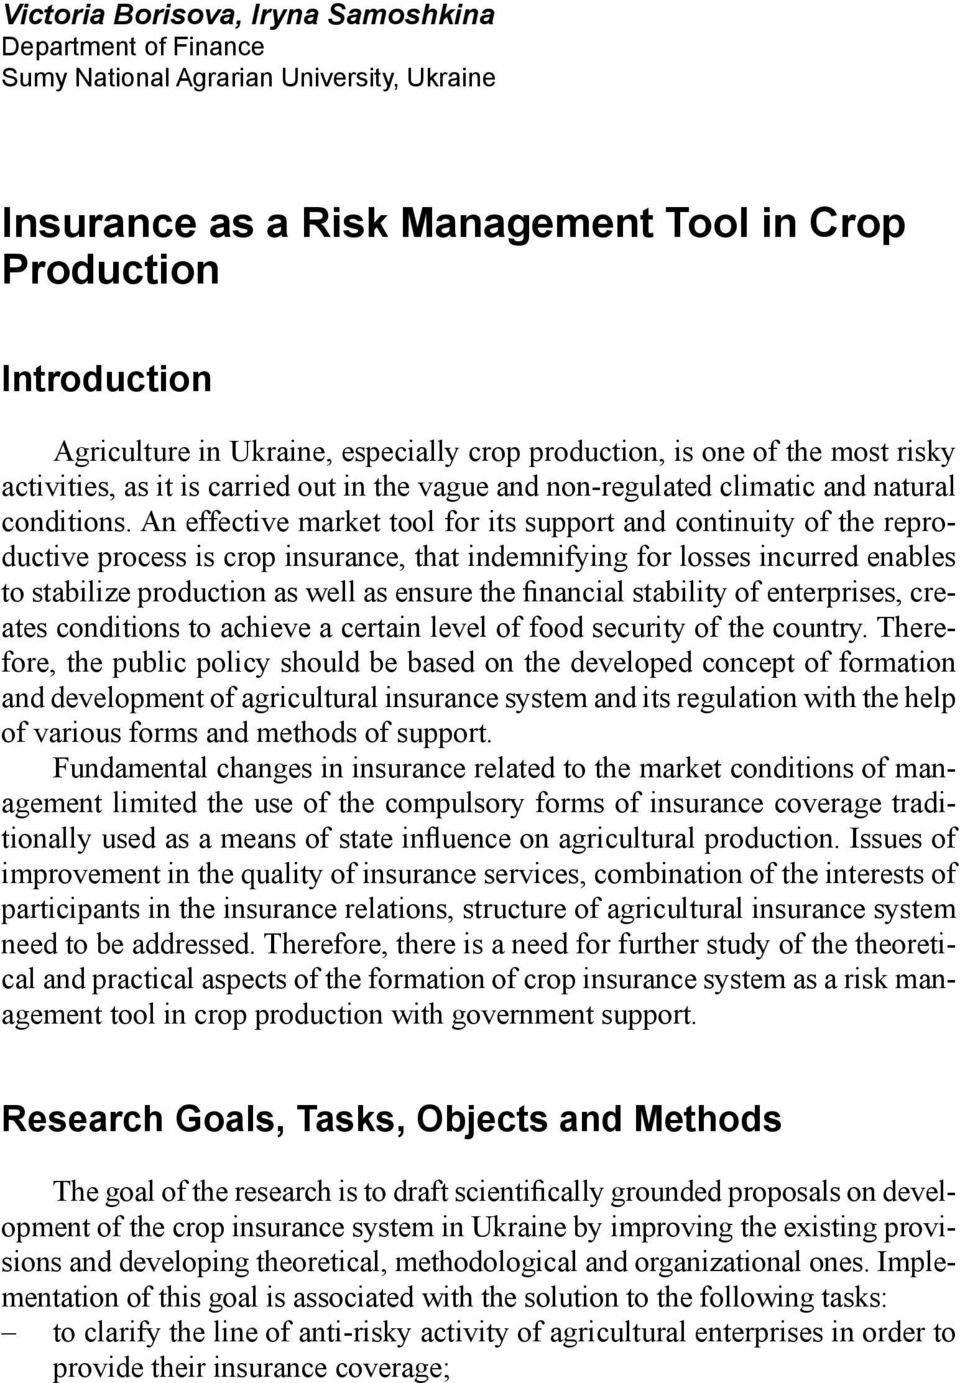 An effective market tool for its support and continuity of the reproductive process is crop insurance, that indemnifying for losses incurred enables to stabilize production as well as ensure the